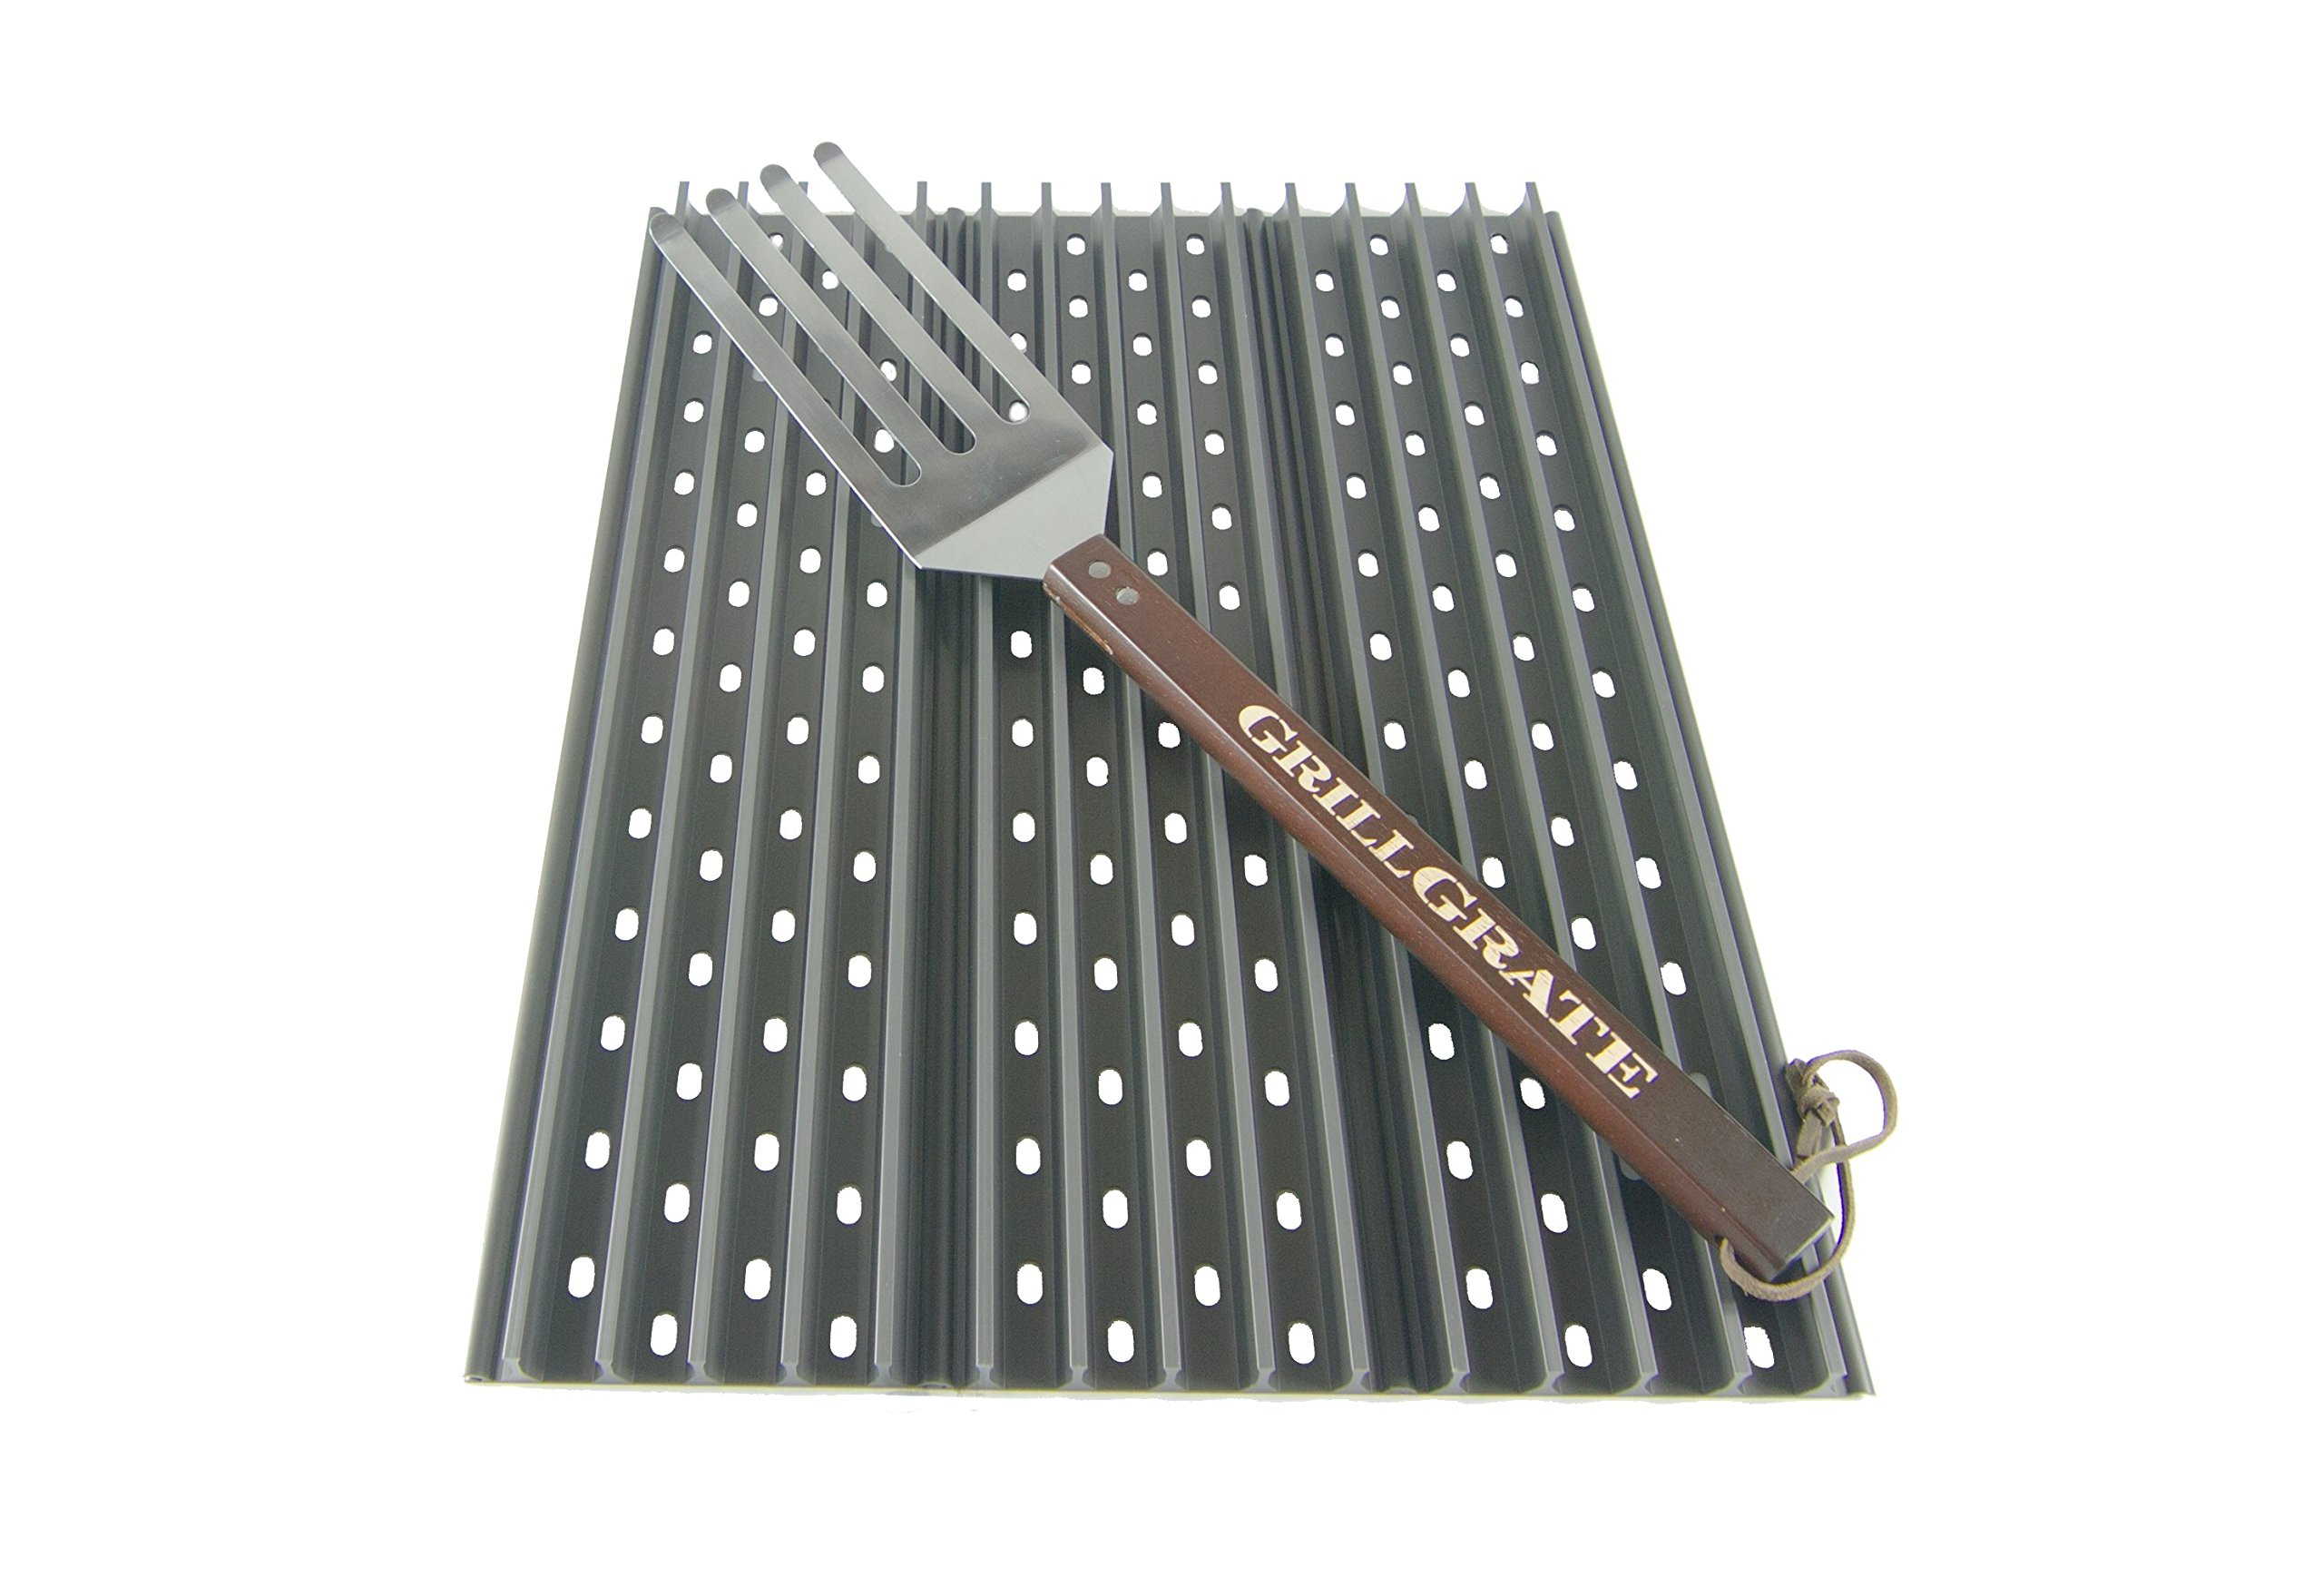 19.25'' Grill Grate Sear Stations for Pellet Grills (SS19.25) by GRILL GRATE BRAND THE ORIGINAL RAISED RAIL DESIGN GET FIRED UP · WWW.GRILLGRATE.COM